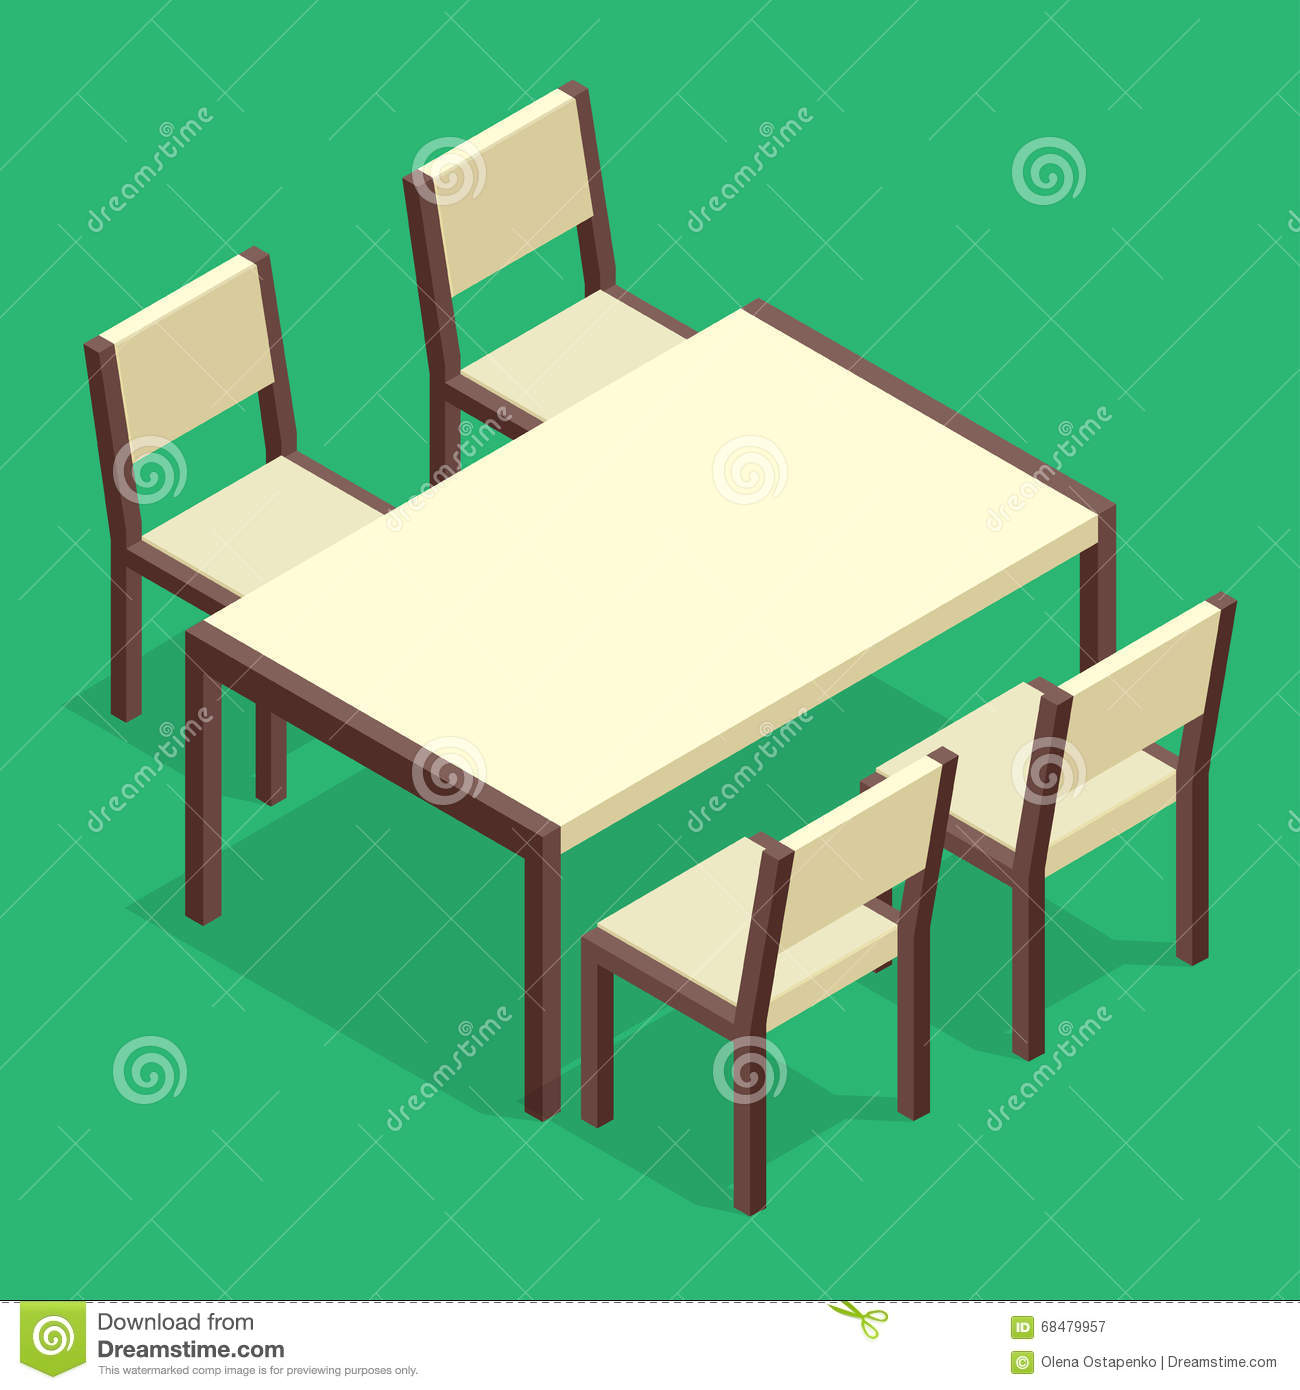 Modern Table And Chairs Wooden Table With Chairs For Cafes Modern Table And Chairs On